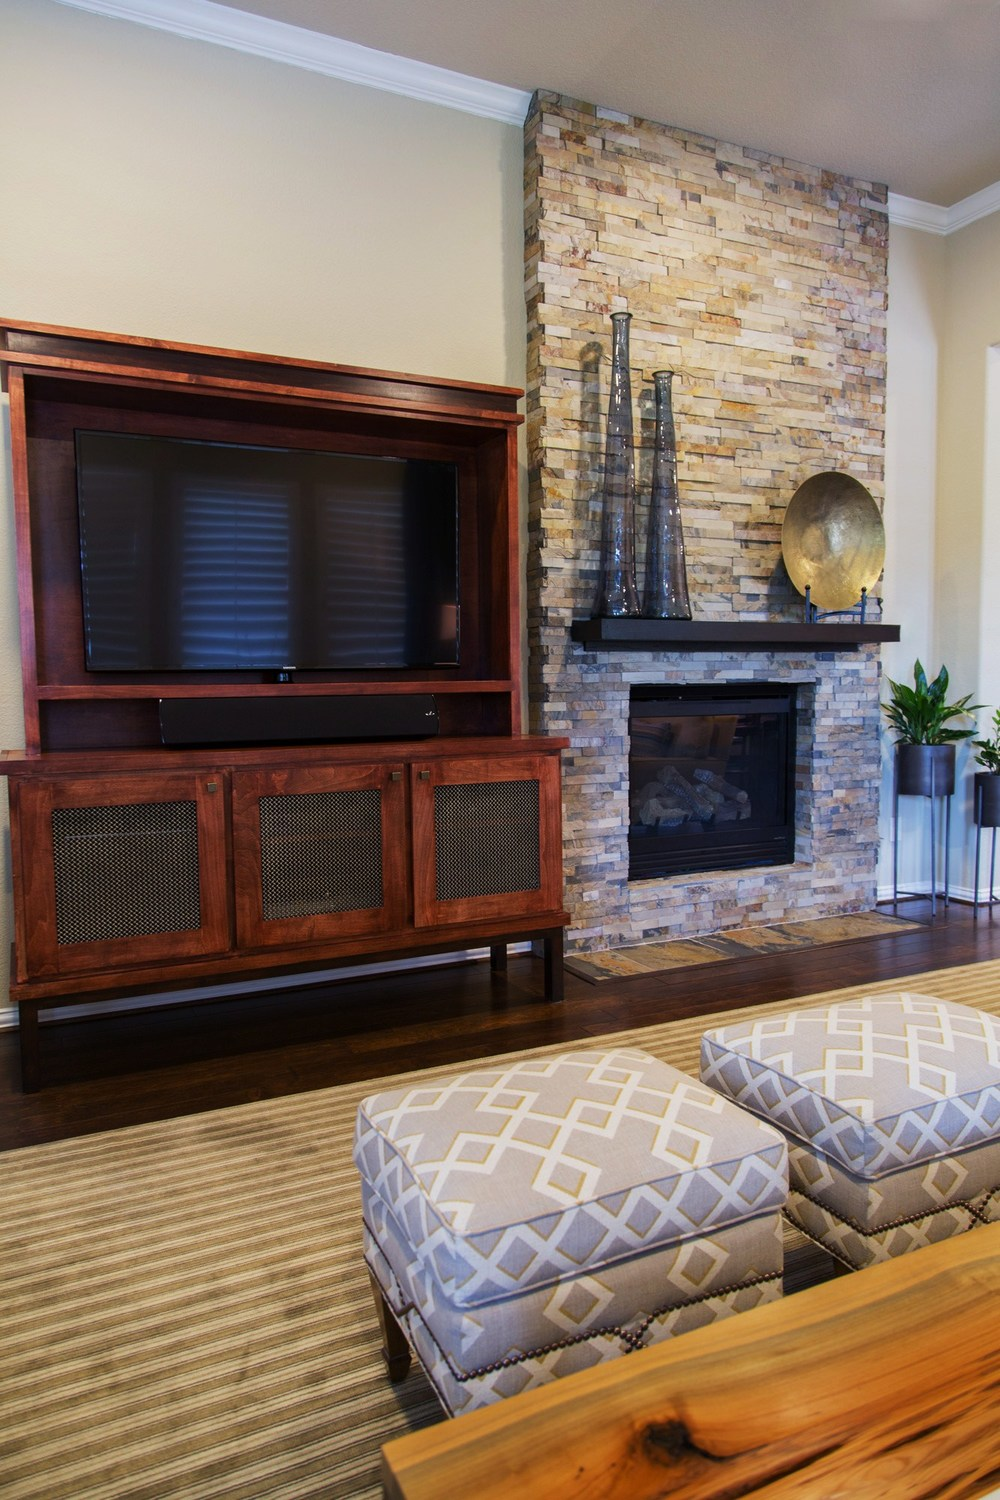 Fireplace room remodel; tv; entertainment center; rug; decor; | Interior Designer: Carla Aston / Photography by Tori Aston